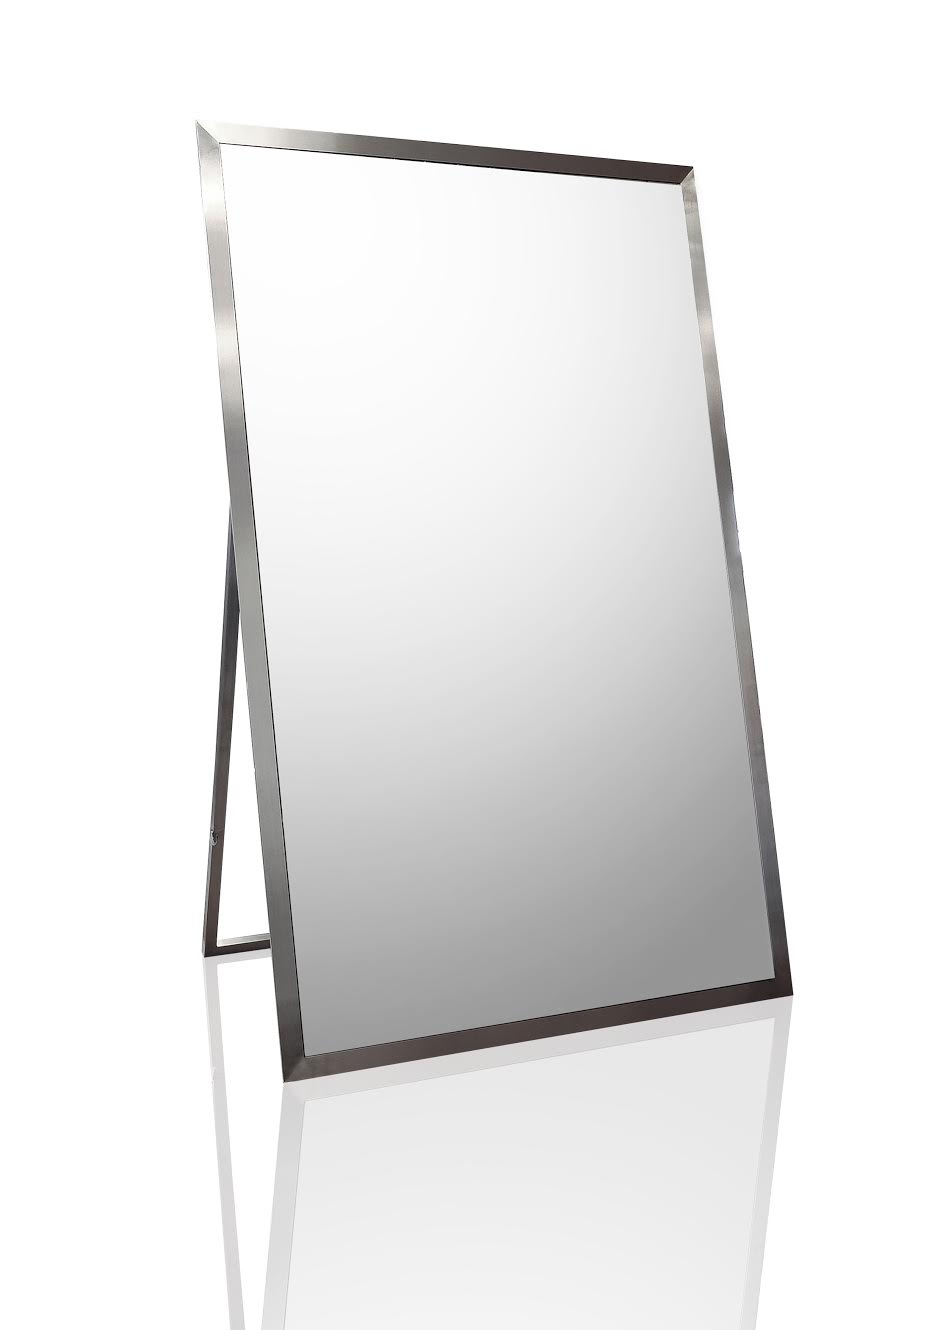 THE ELEGANCE MIRROR TV OFF.jpg